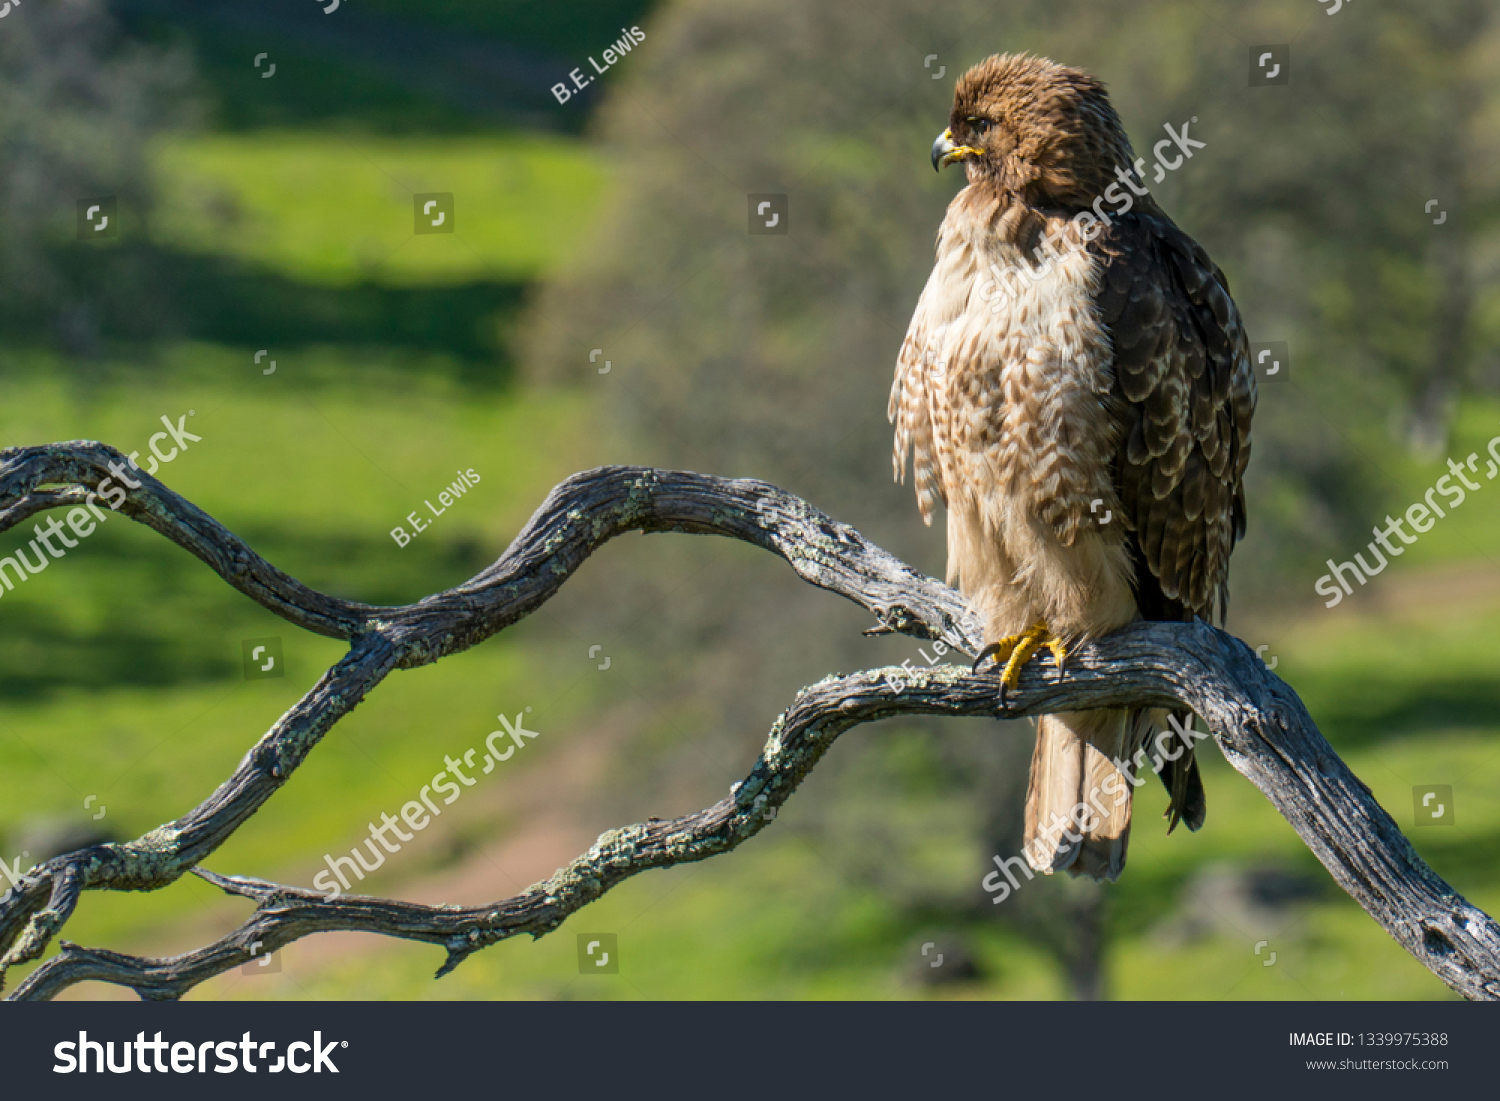 Red Tailed Hawk Sitting On Dead Stock Photo Edit Now 1339975388